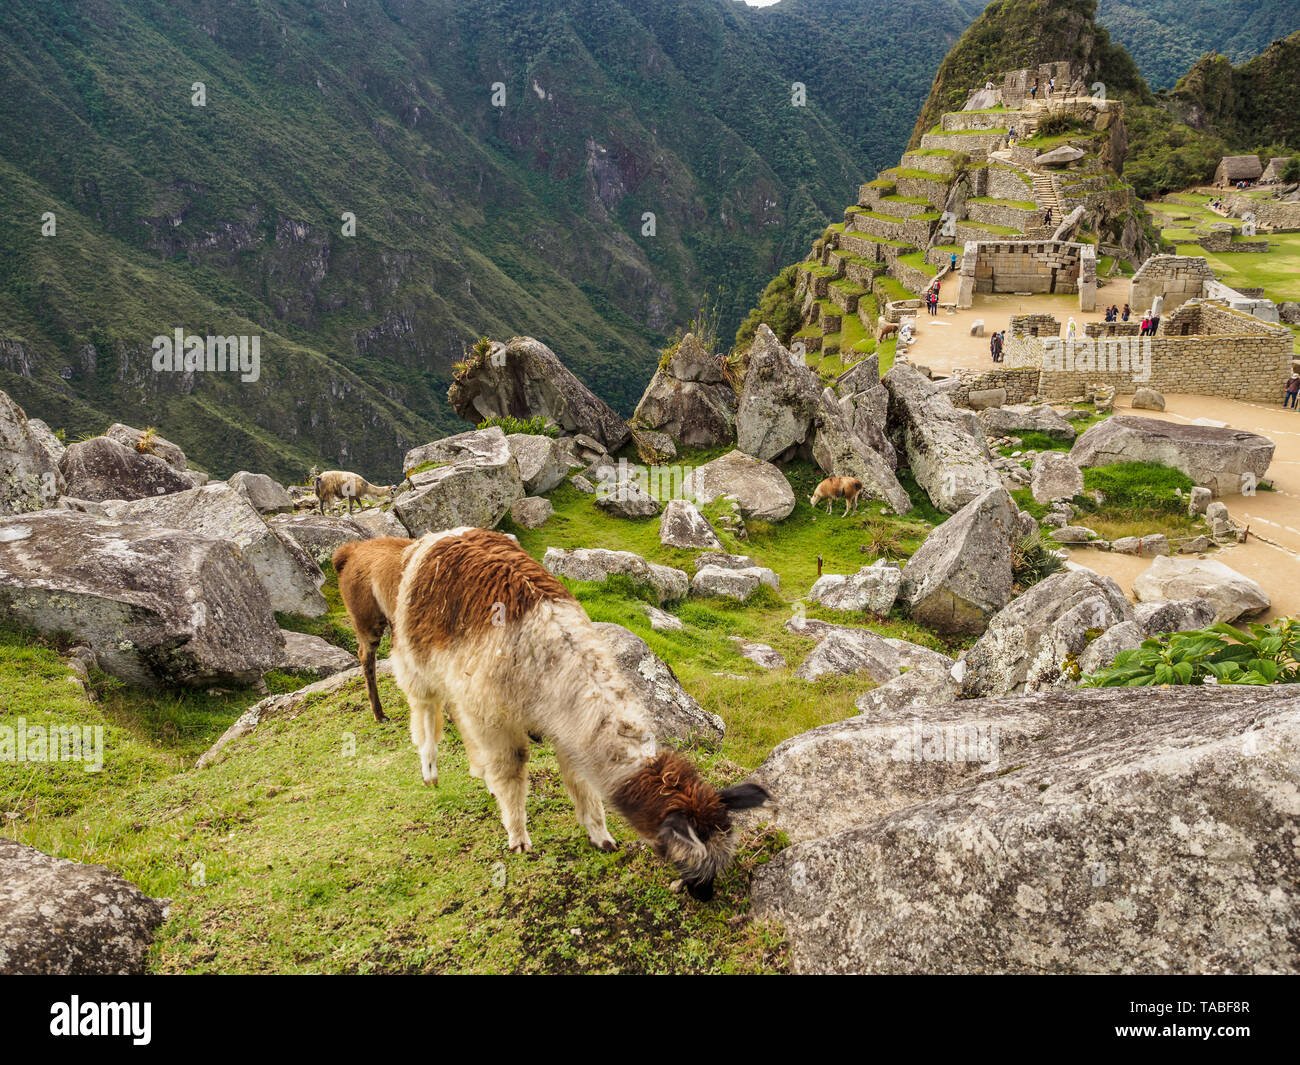 The lost Inca city of Machu Picchu in the Andes mountain range, Peru - Stock Image